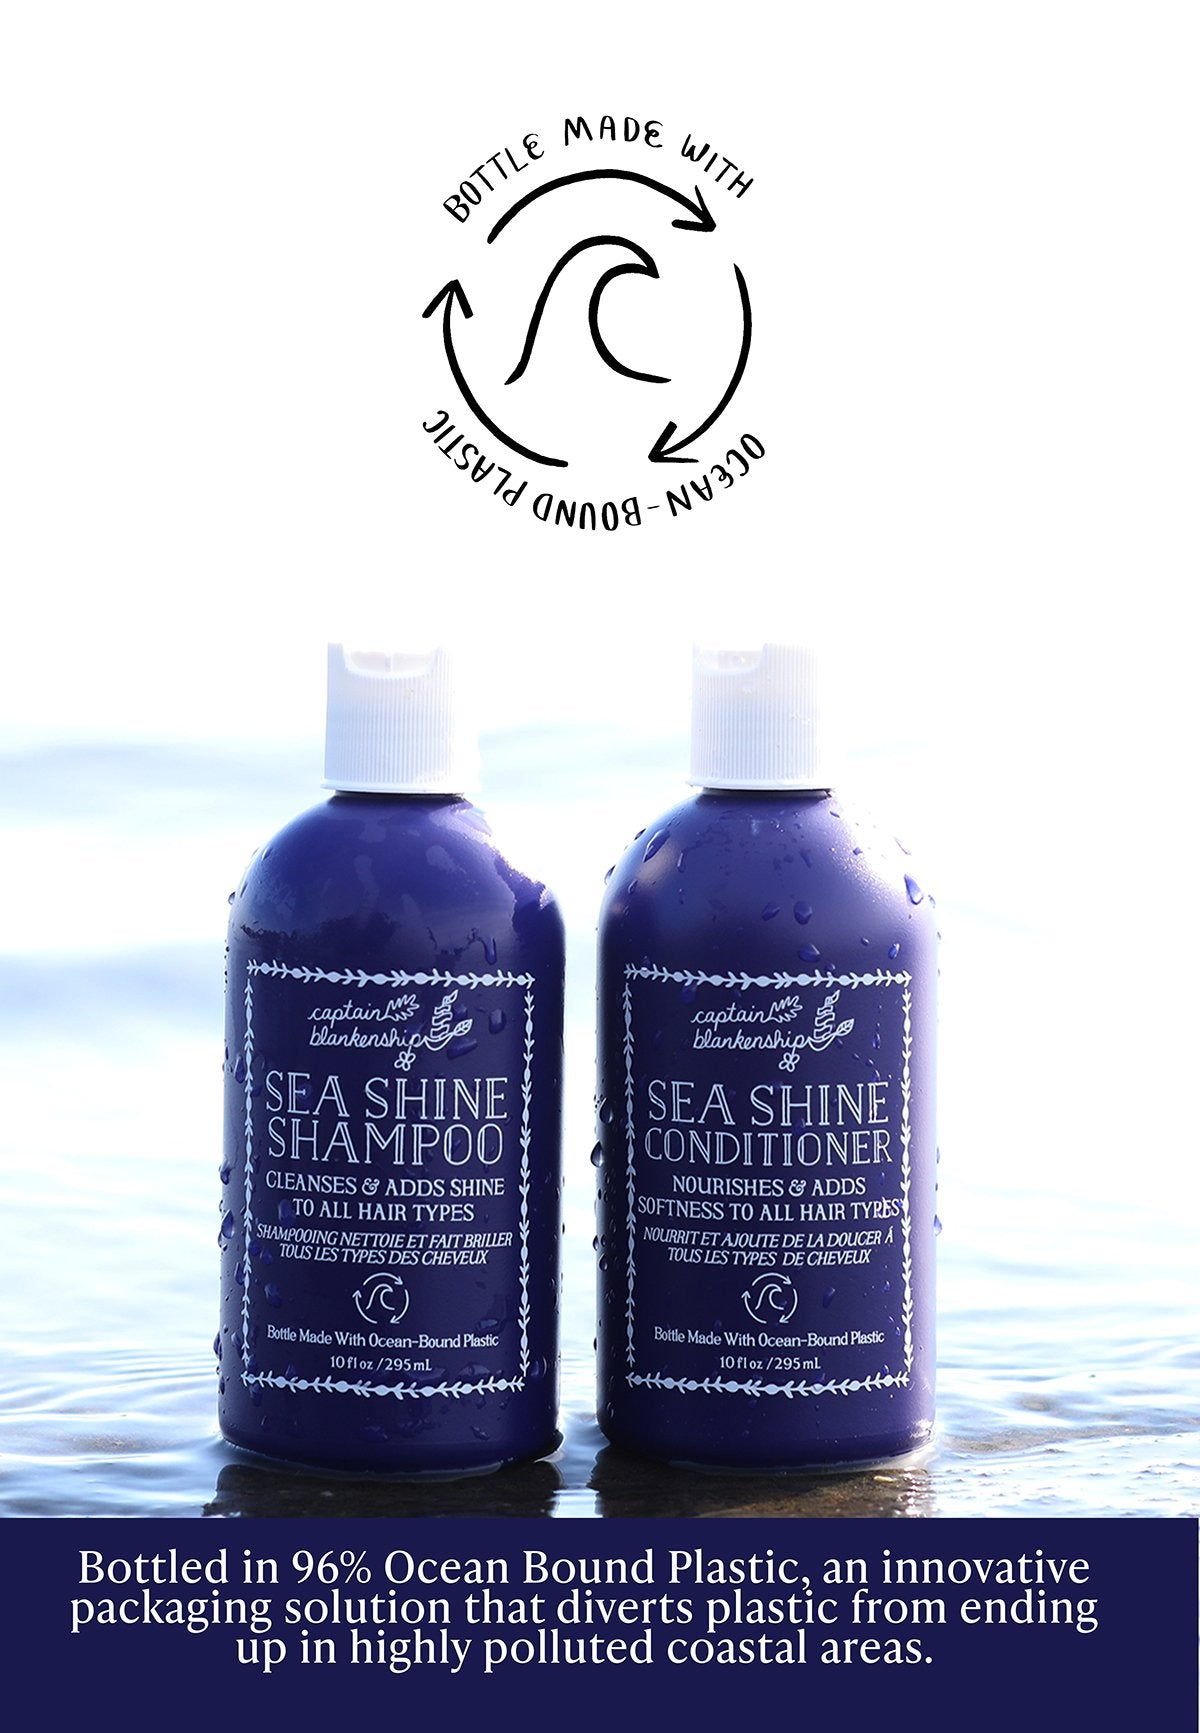 Sea Shine Conditioner (4896024526919)